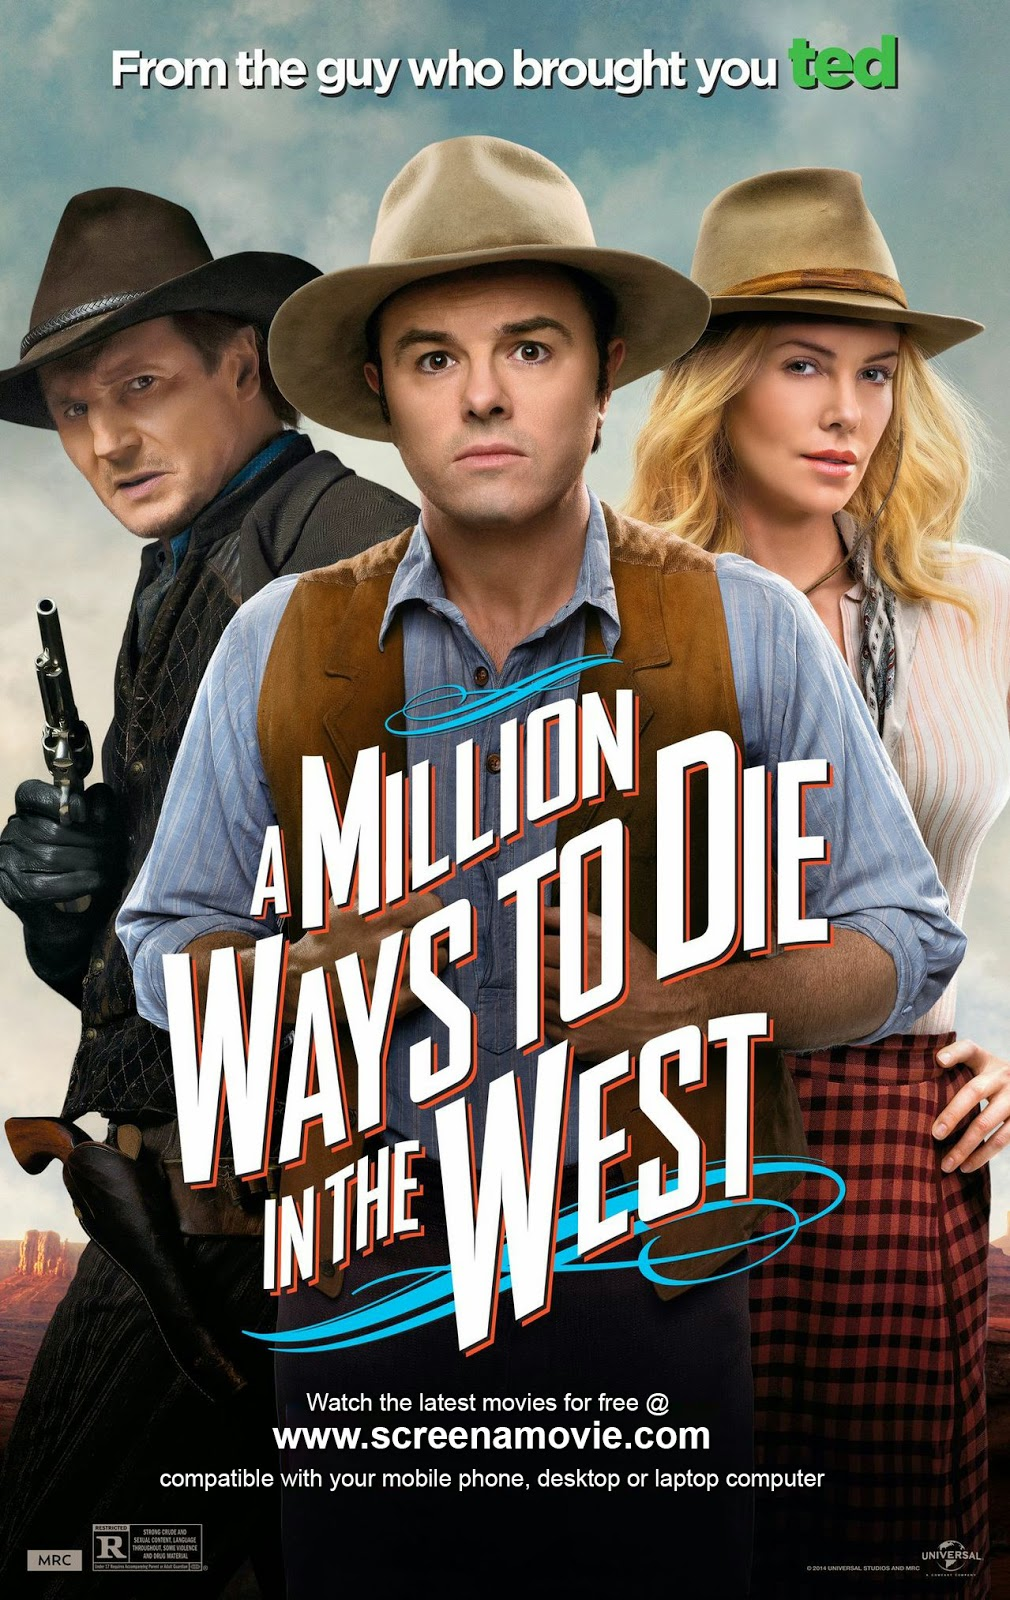 A Million Ways to Die in the West_@screenamovie